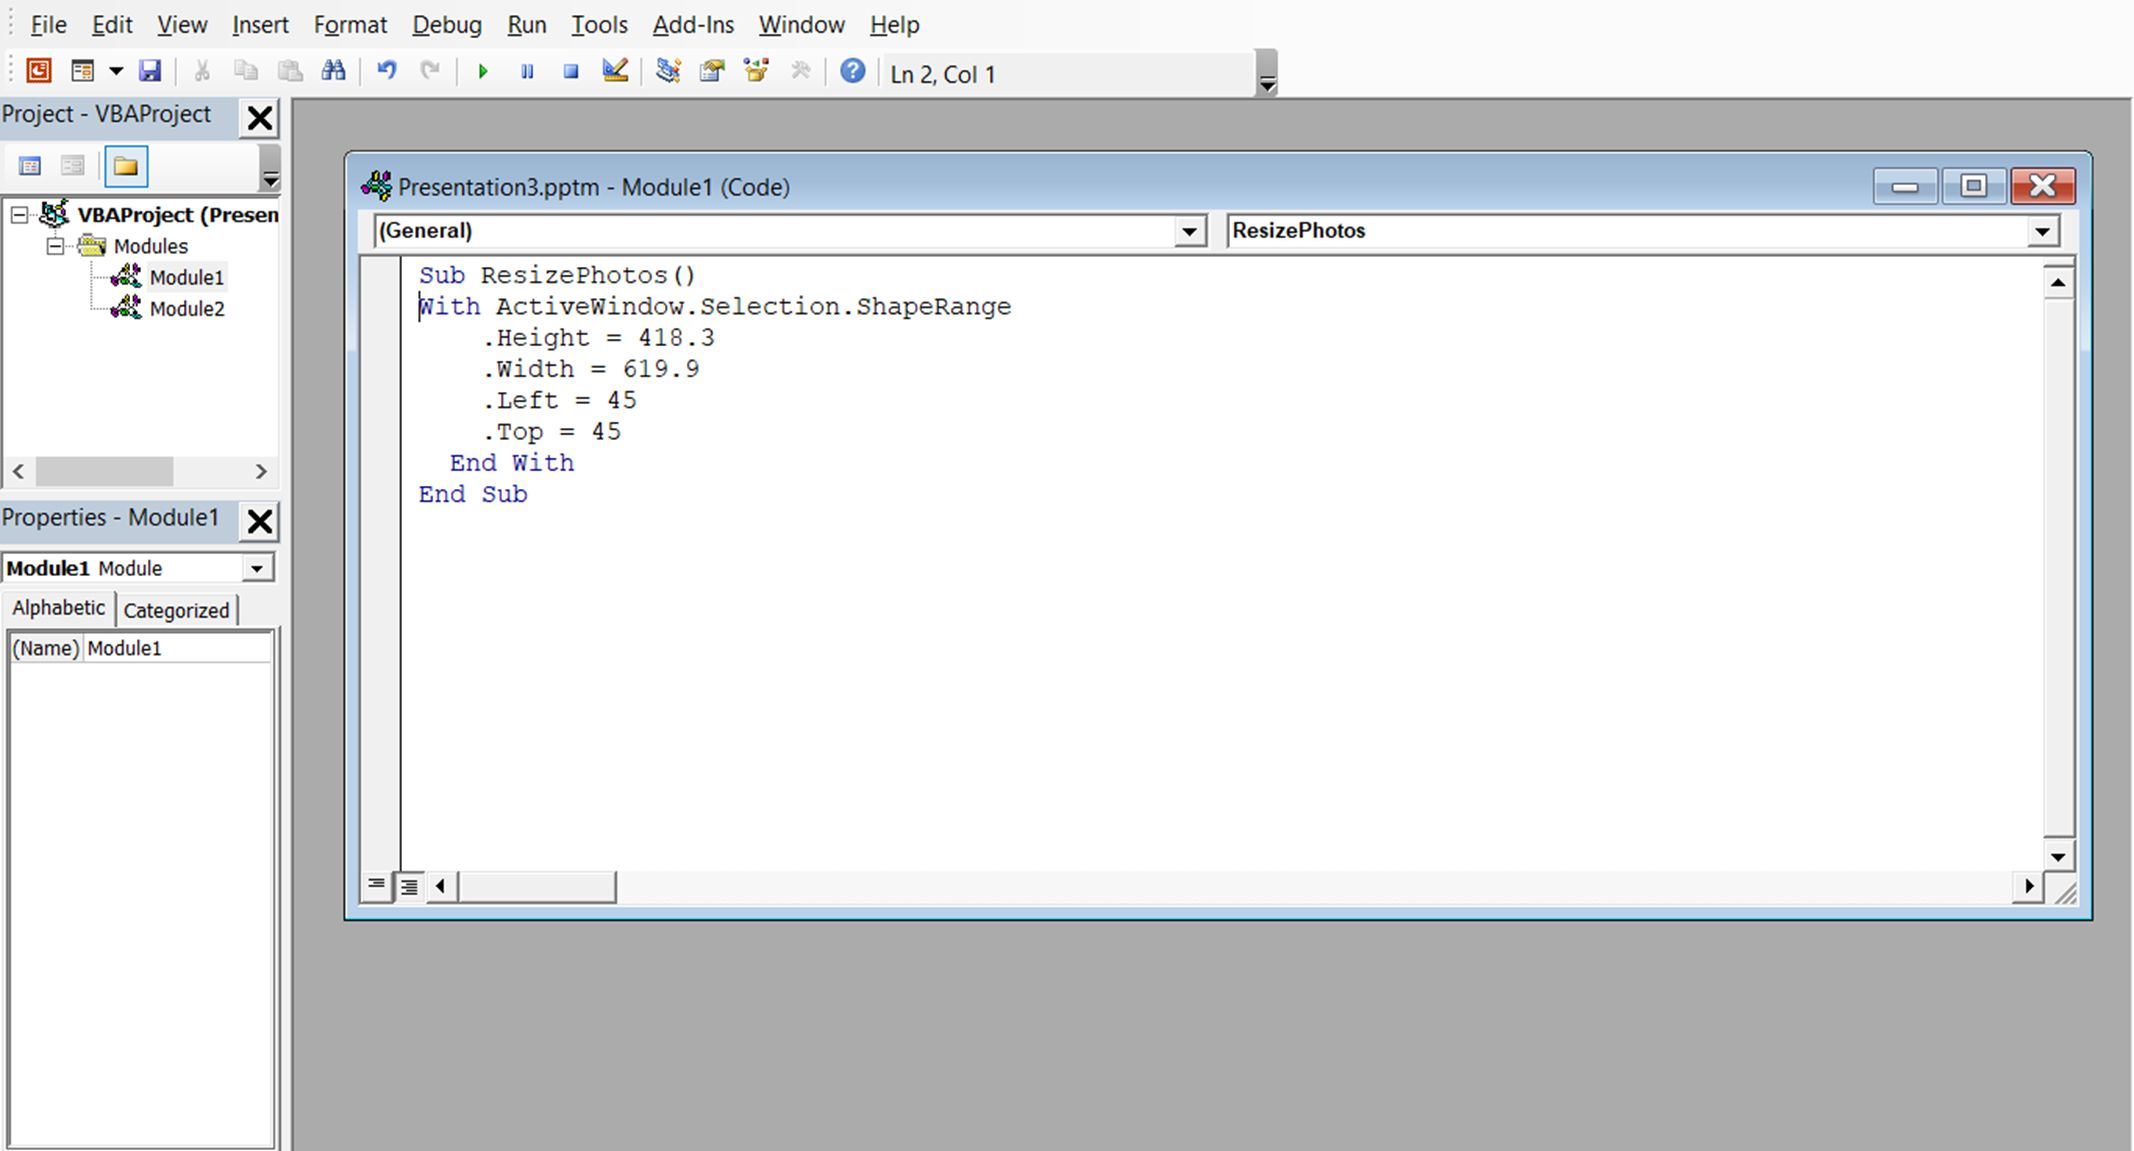 A screenshot showing example VBA code to resize an image in PowerPoint